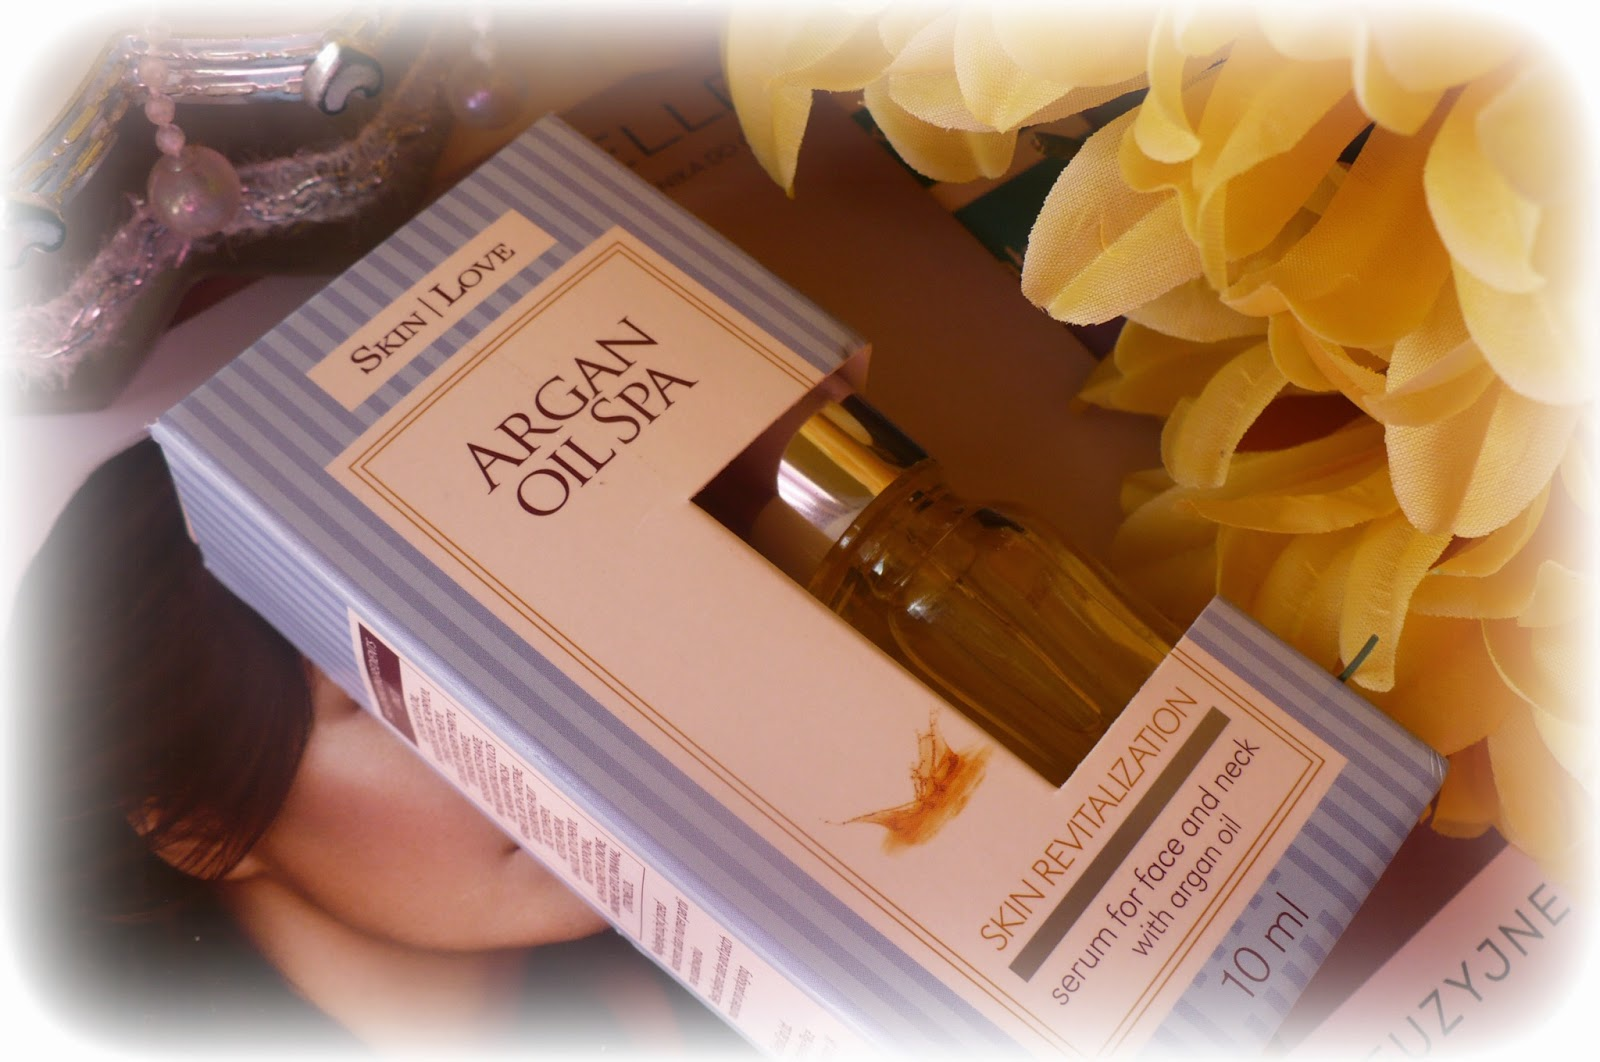 Skin Love - Serum Argan Oil Spa :) Drogeria Marysieńka.